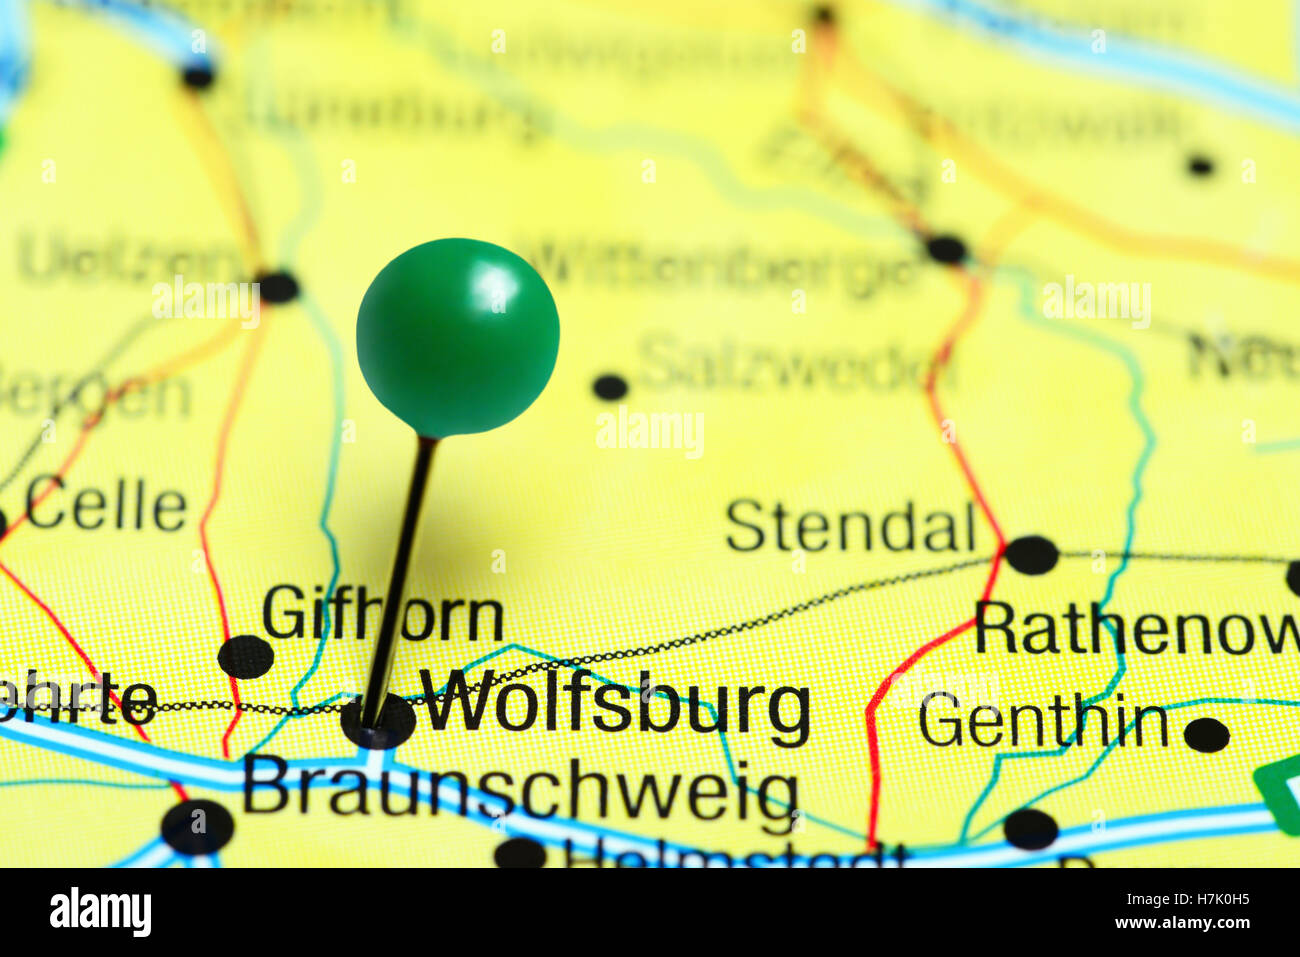 Wolfsburg pinned on a map of Germany Stock Photo Royalty Free Image